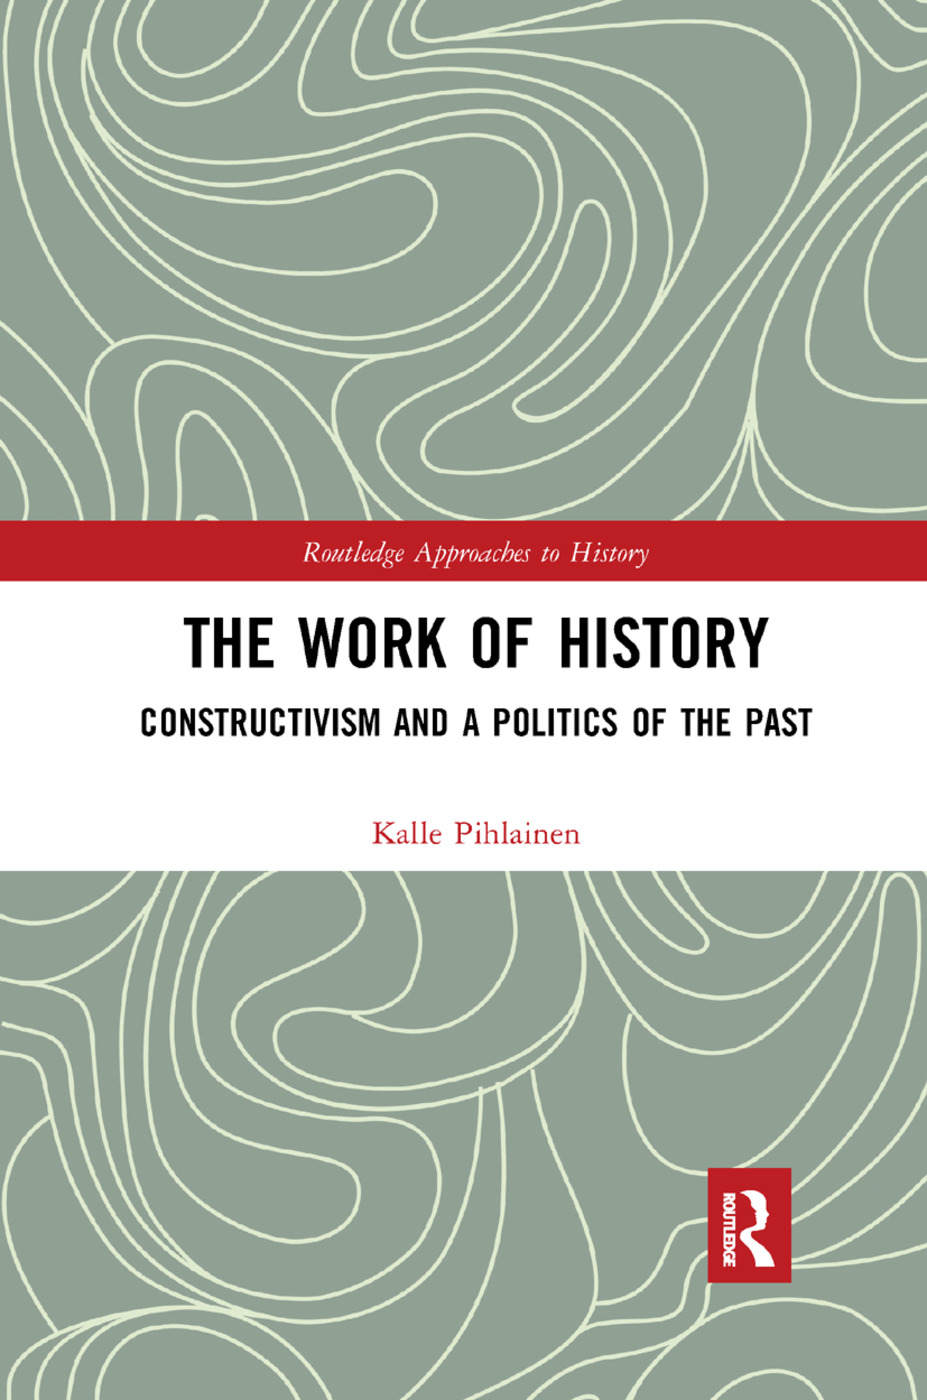 The Work of History: Constructivism and a Politics of the Past book cover